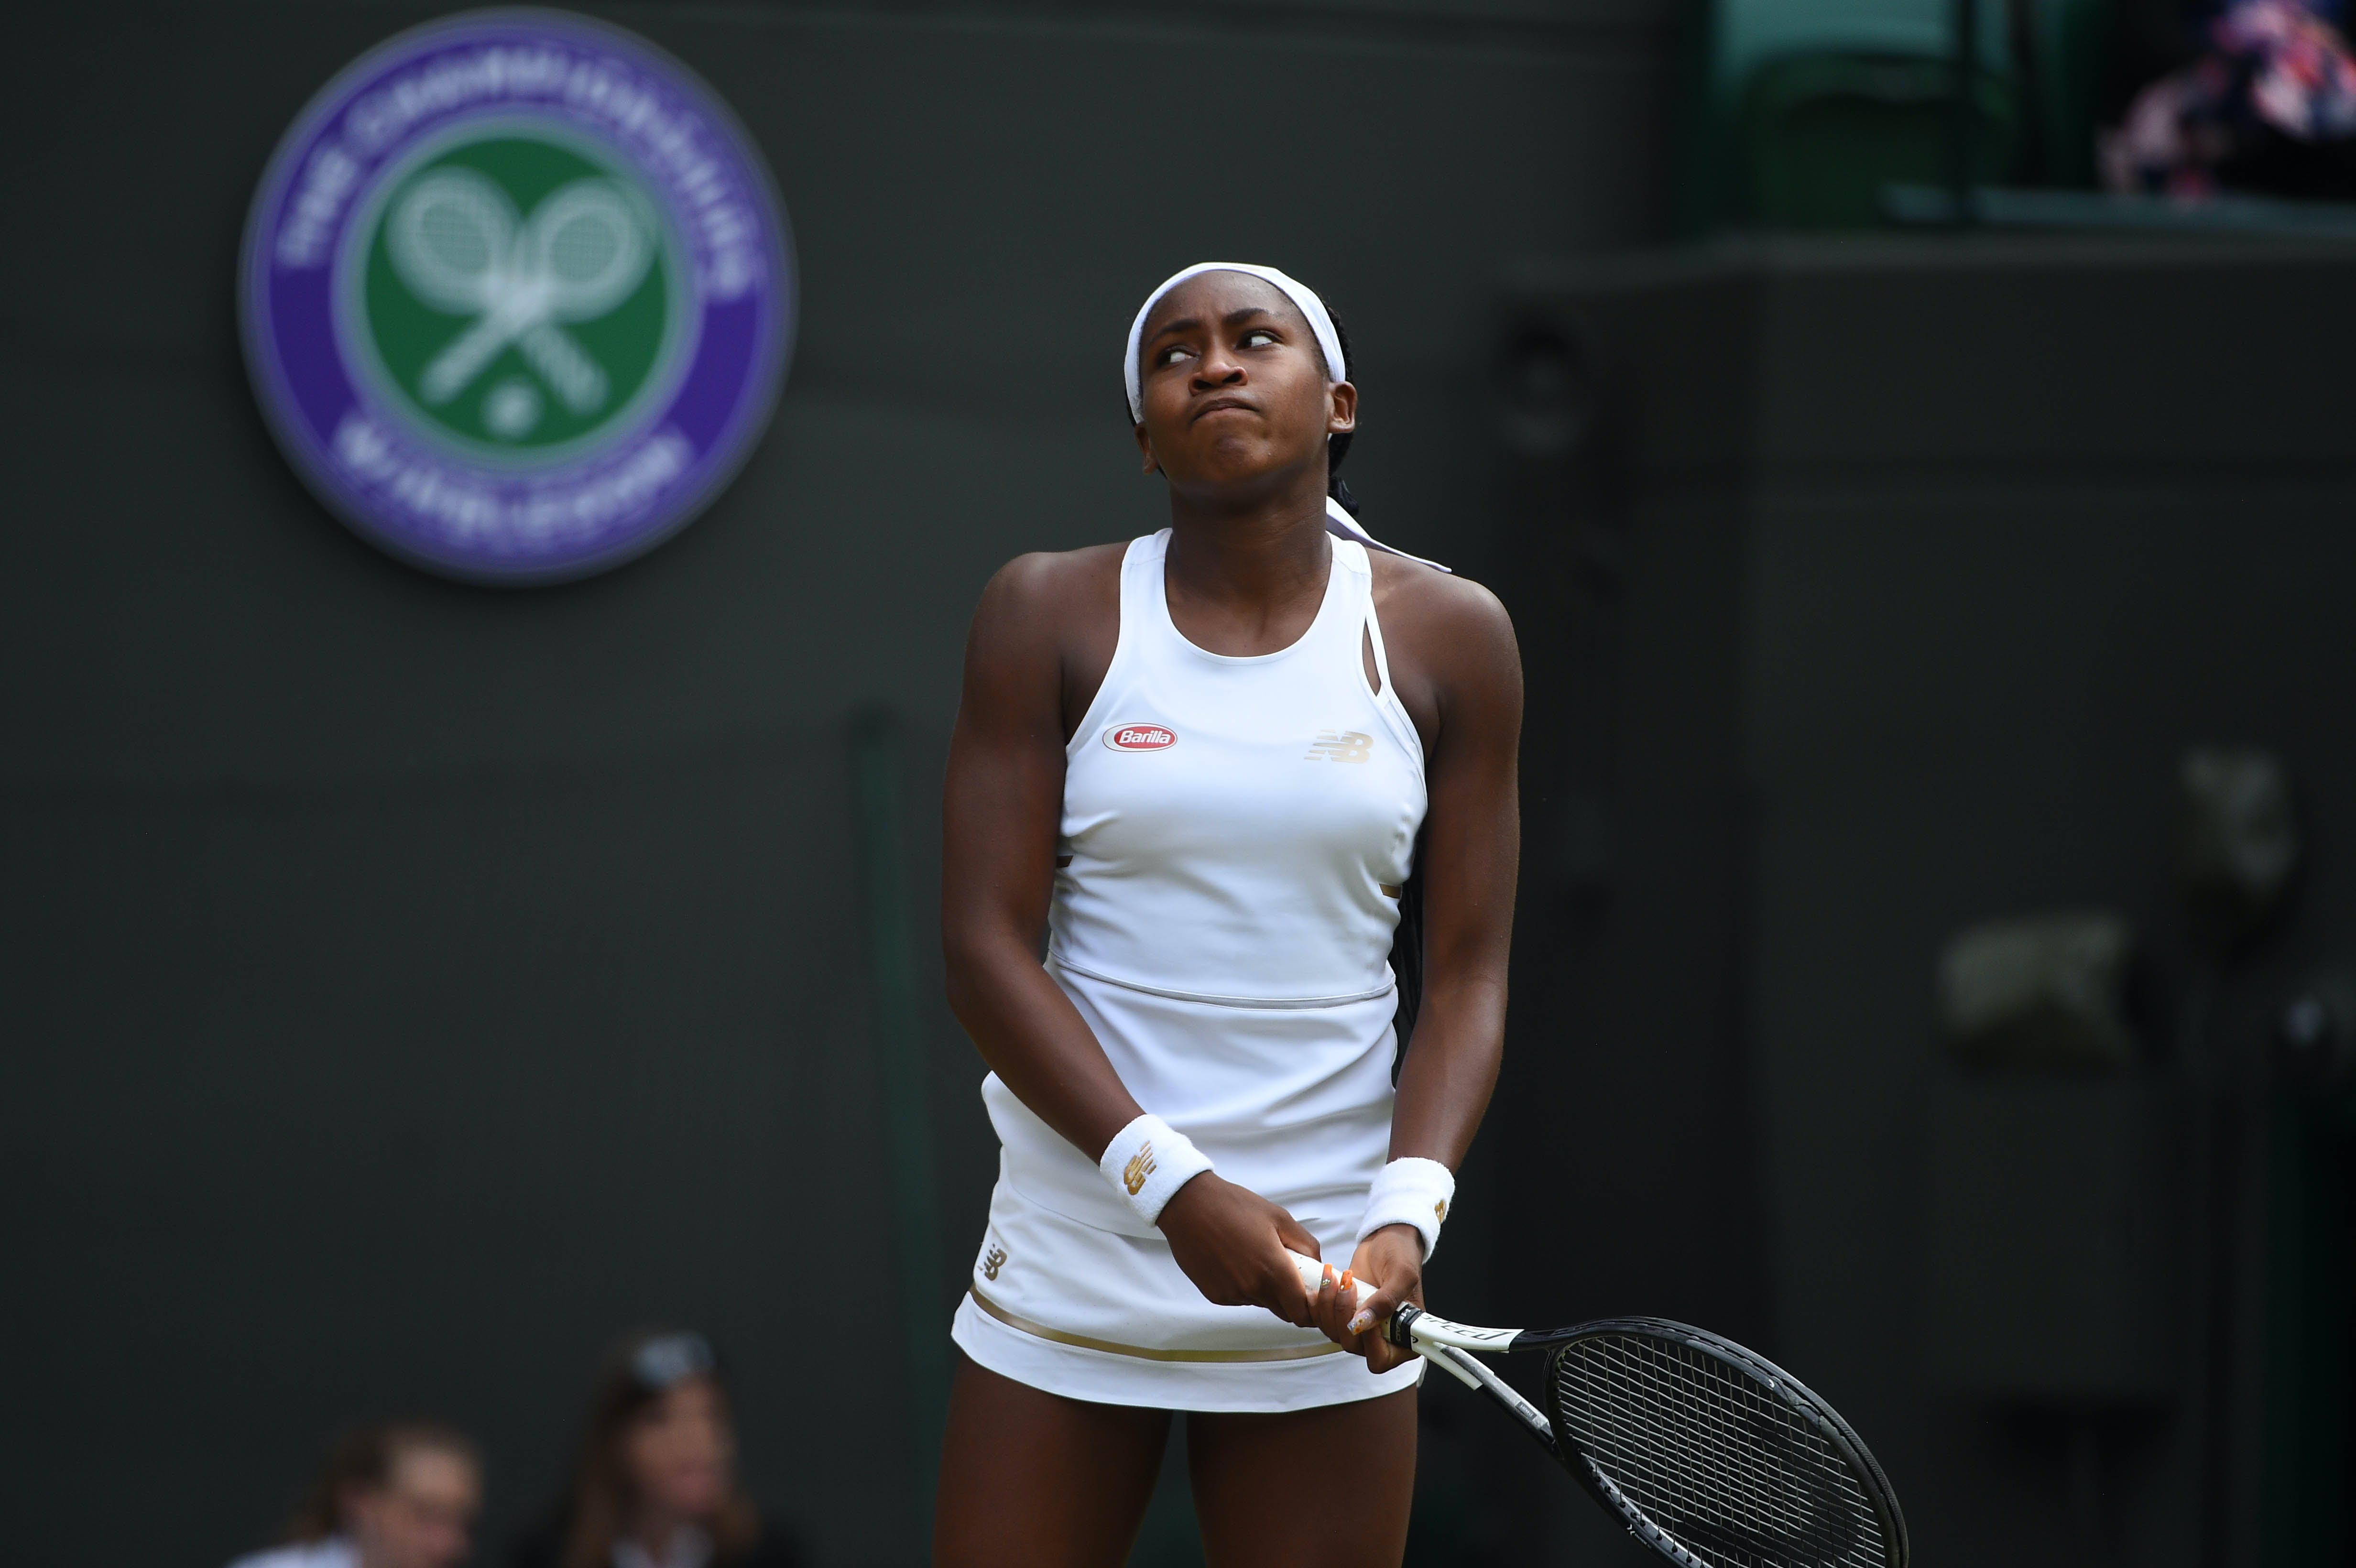 Coco Gauff disappointed during her match against Simona Halep at Wimbledon 2019